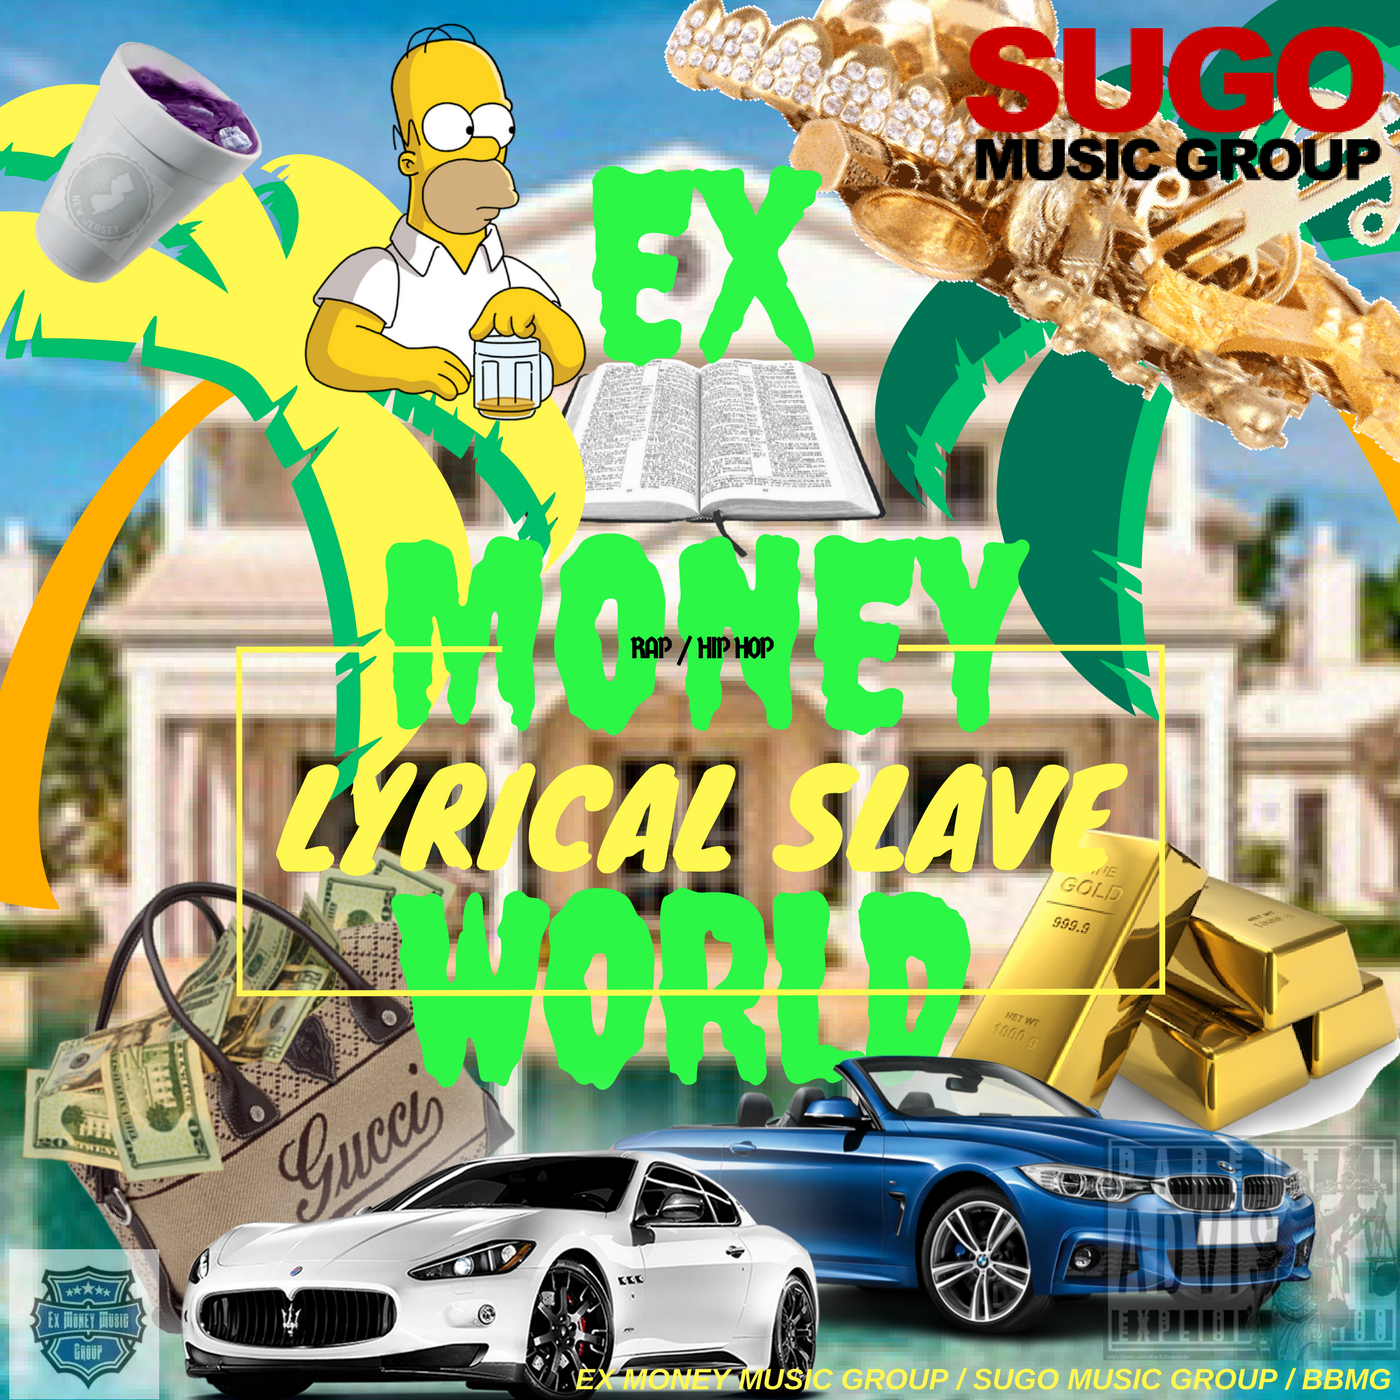 Design Album or Mixtape Covers Fastest Delivery